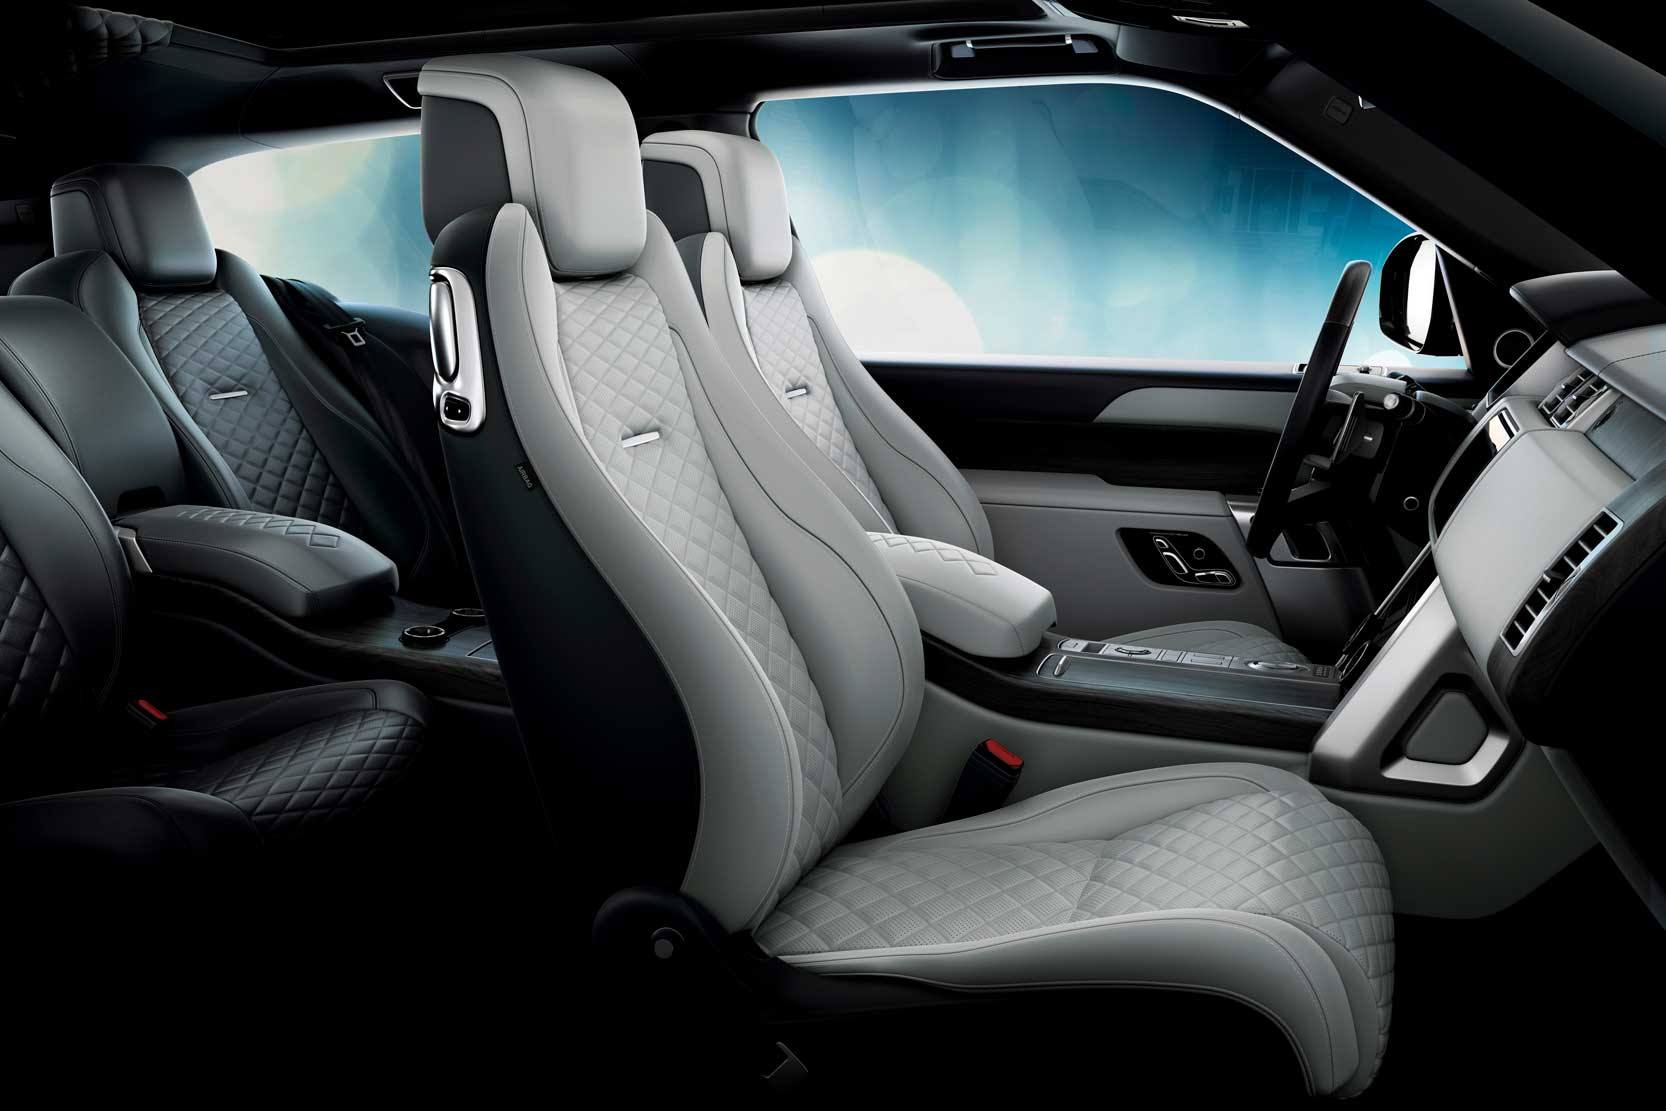 Interieur_Land-Rover-Range-Rover-SV-Coupe_11